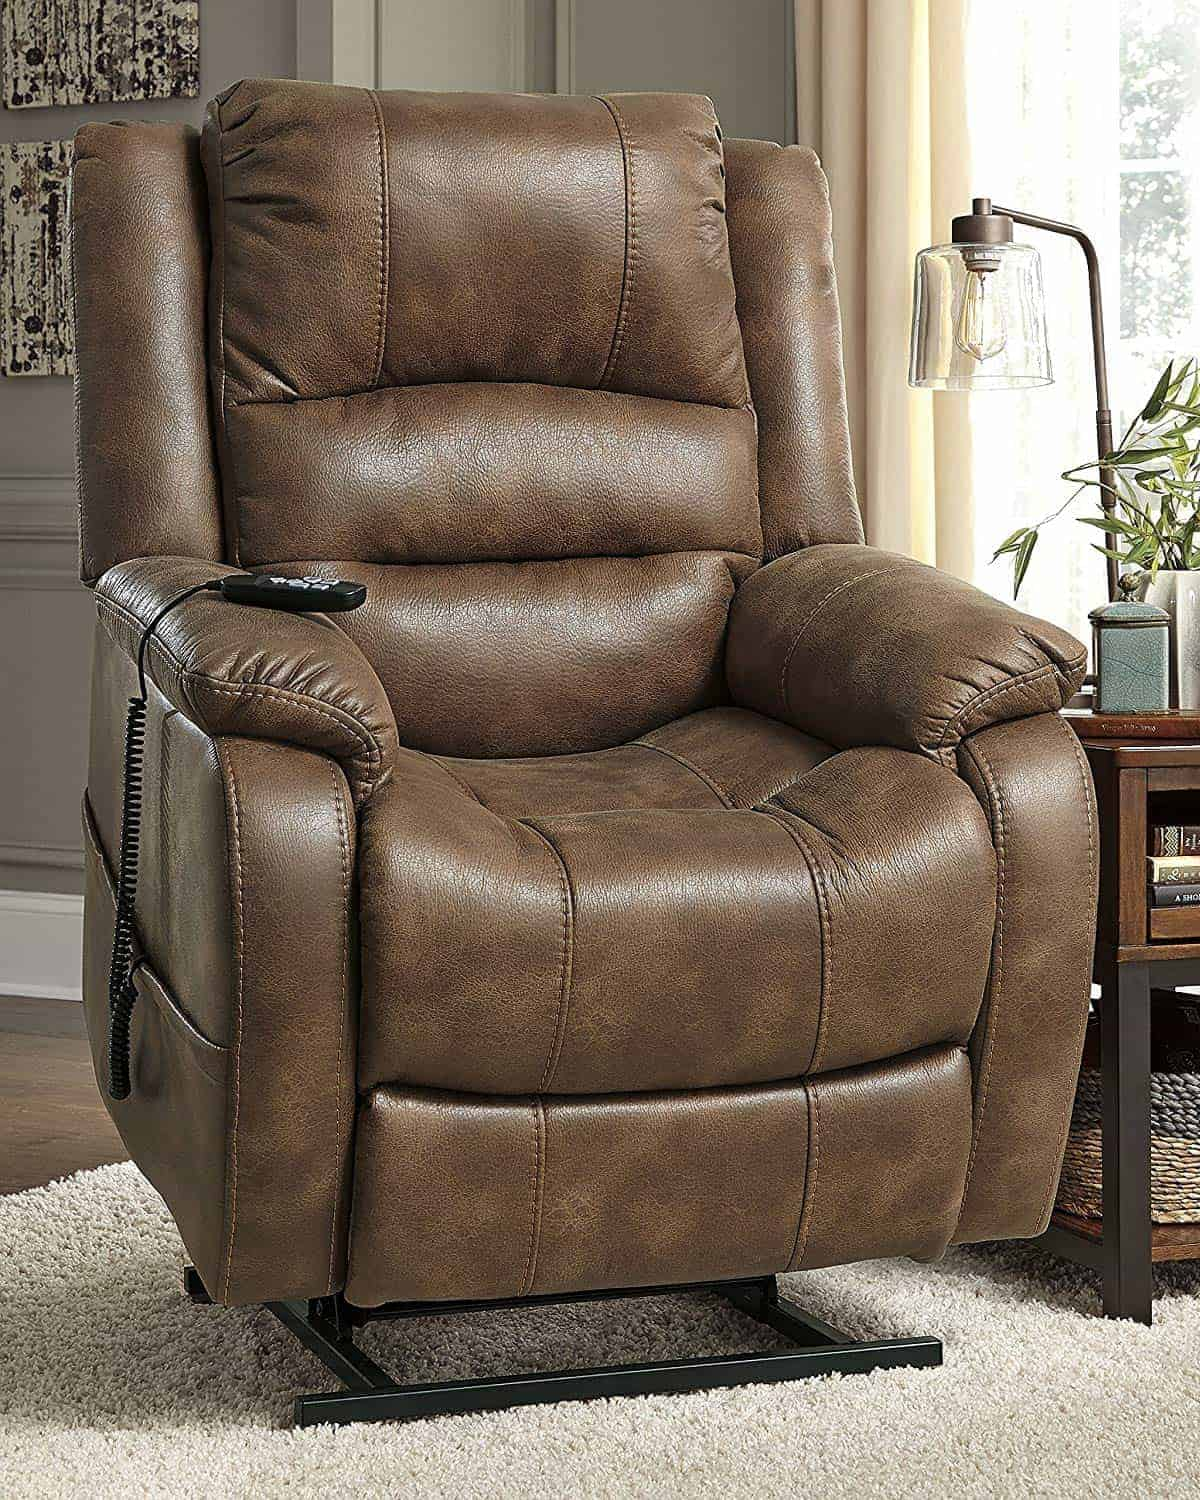 Most comfortable and best recliners for elderly people